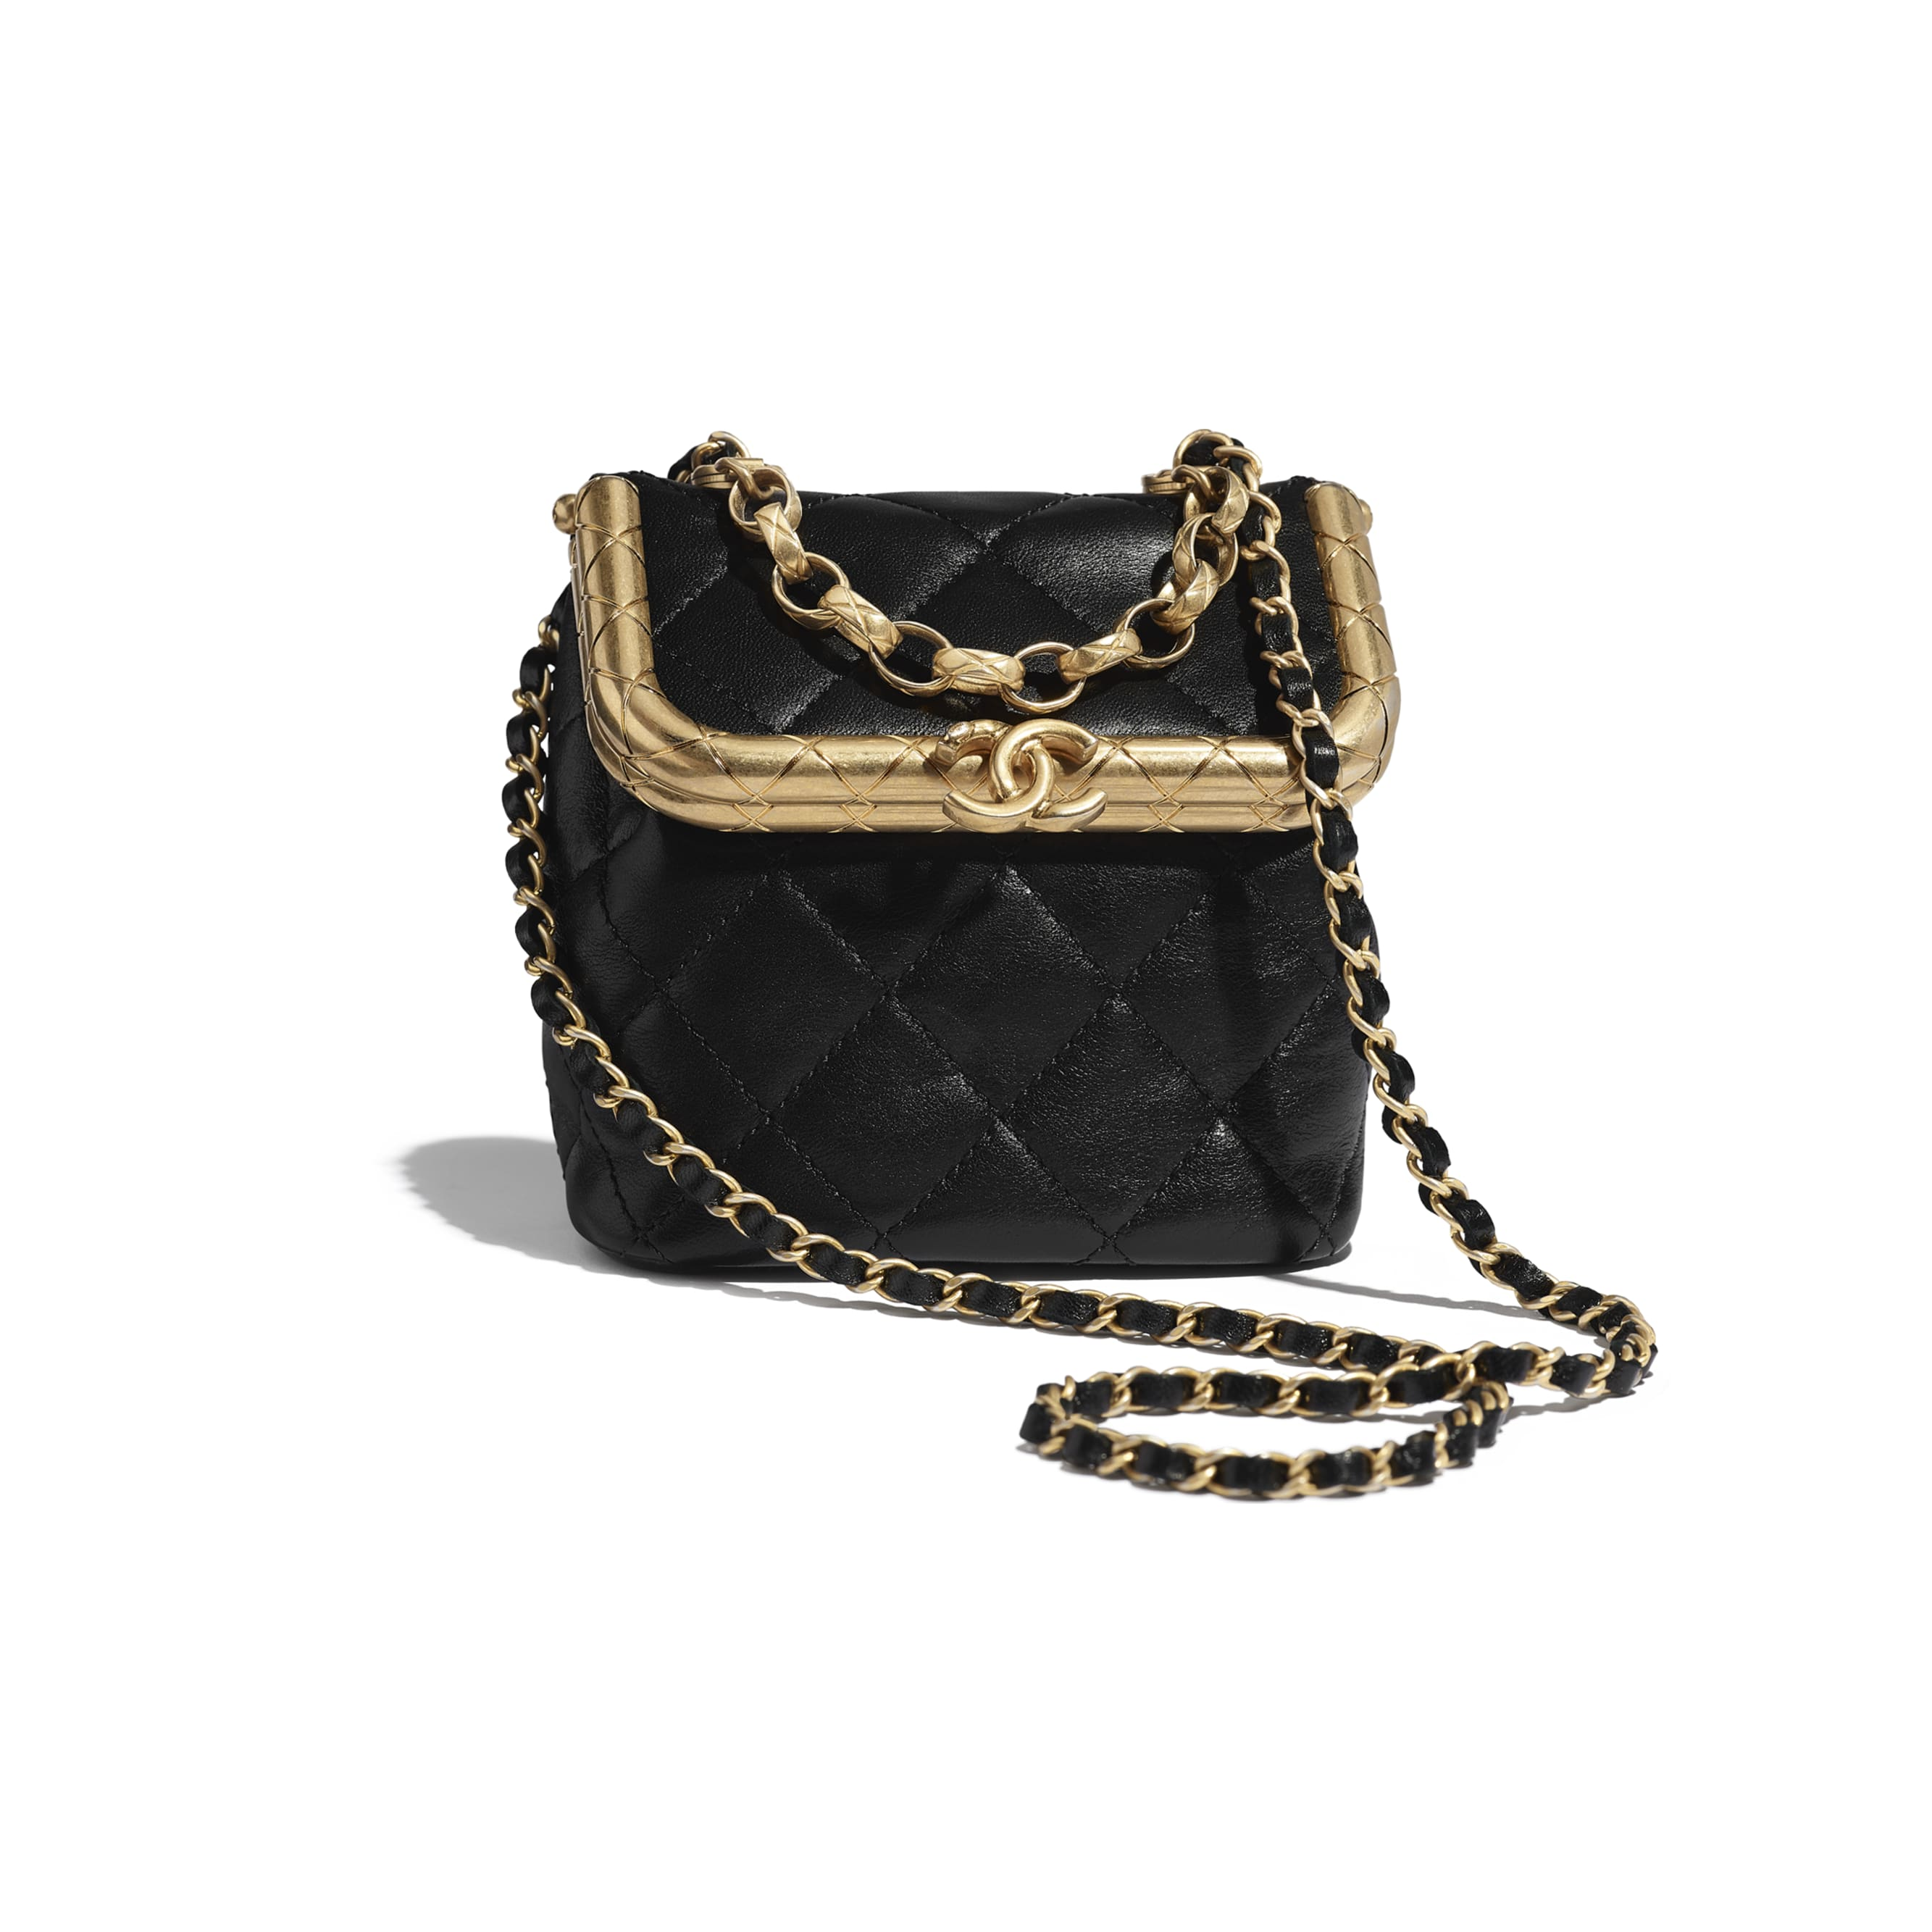 Small Kiss-Lock Bag - Black - Lambskin - CHANEL - Default view - see standard sized version